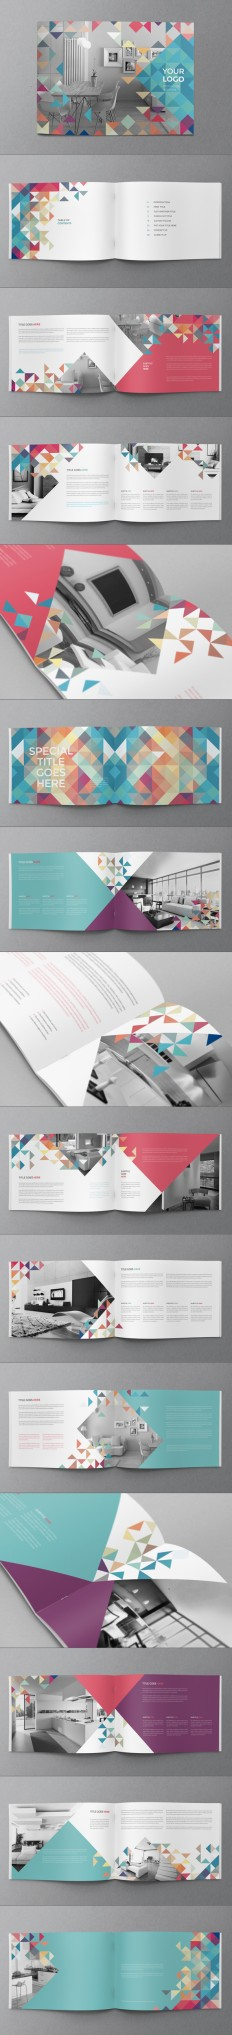 Minimal Colorful Brochure on